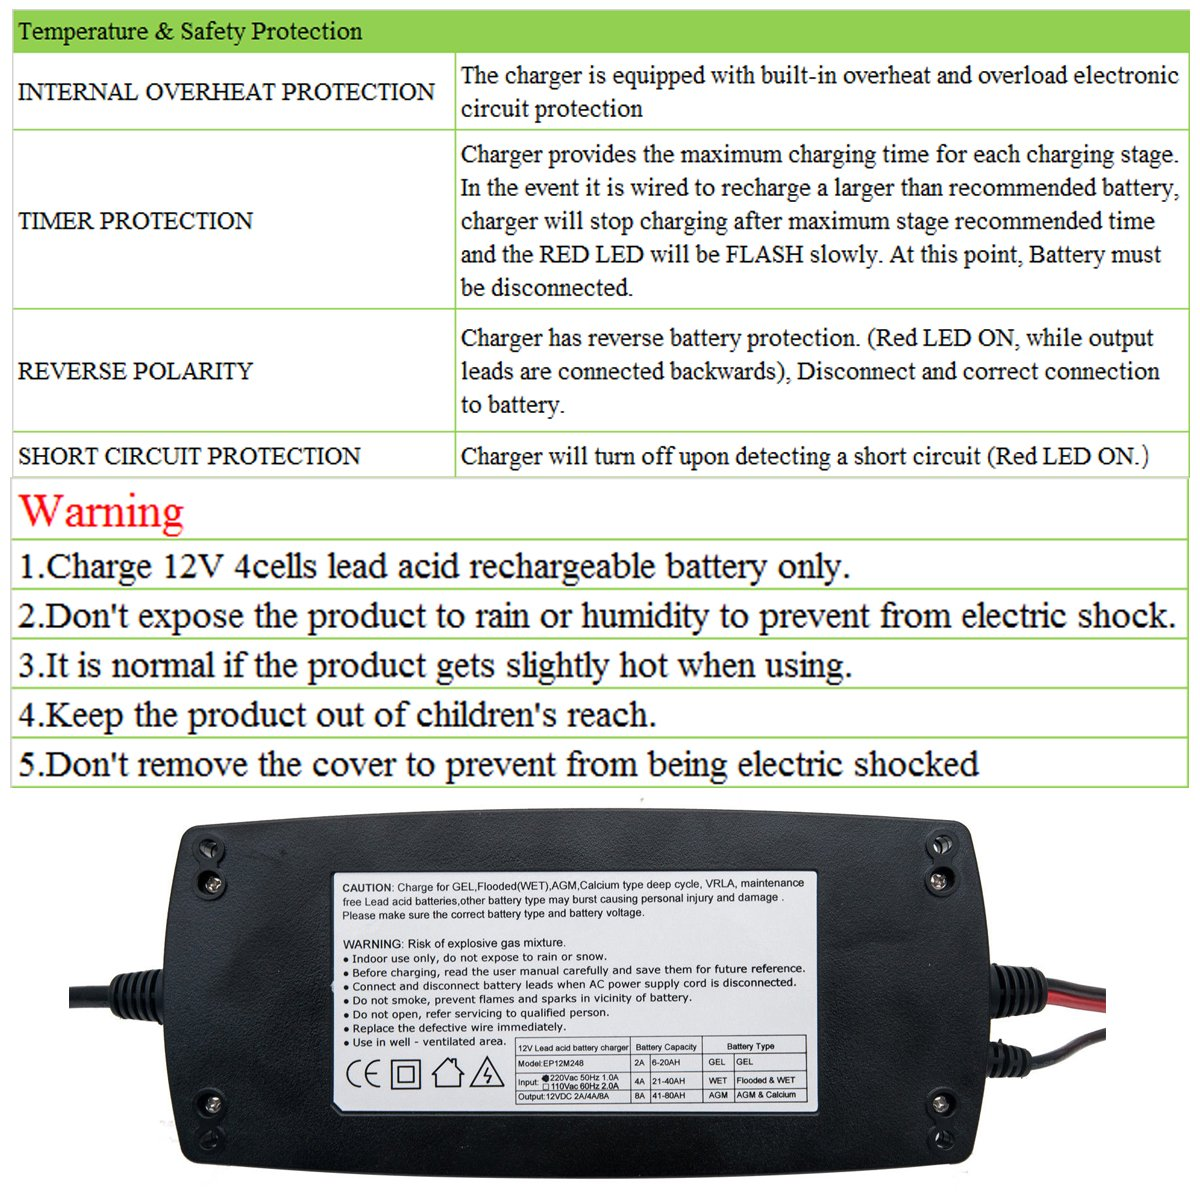 Maso Car Battery Charger 12v Fast Charge 2 4 8 Amp 7 12v5a Automotive With Polarity Output Short Circuit Step Trickle Chargers Conditioner Lead Acid Motorcycle Boat Camper Motorhome